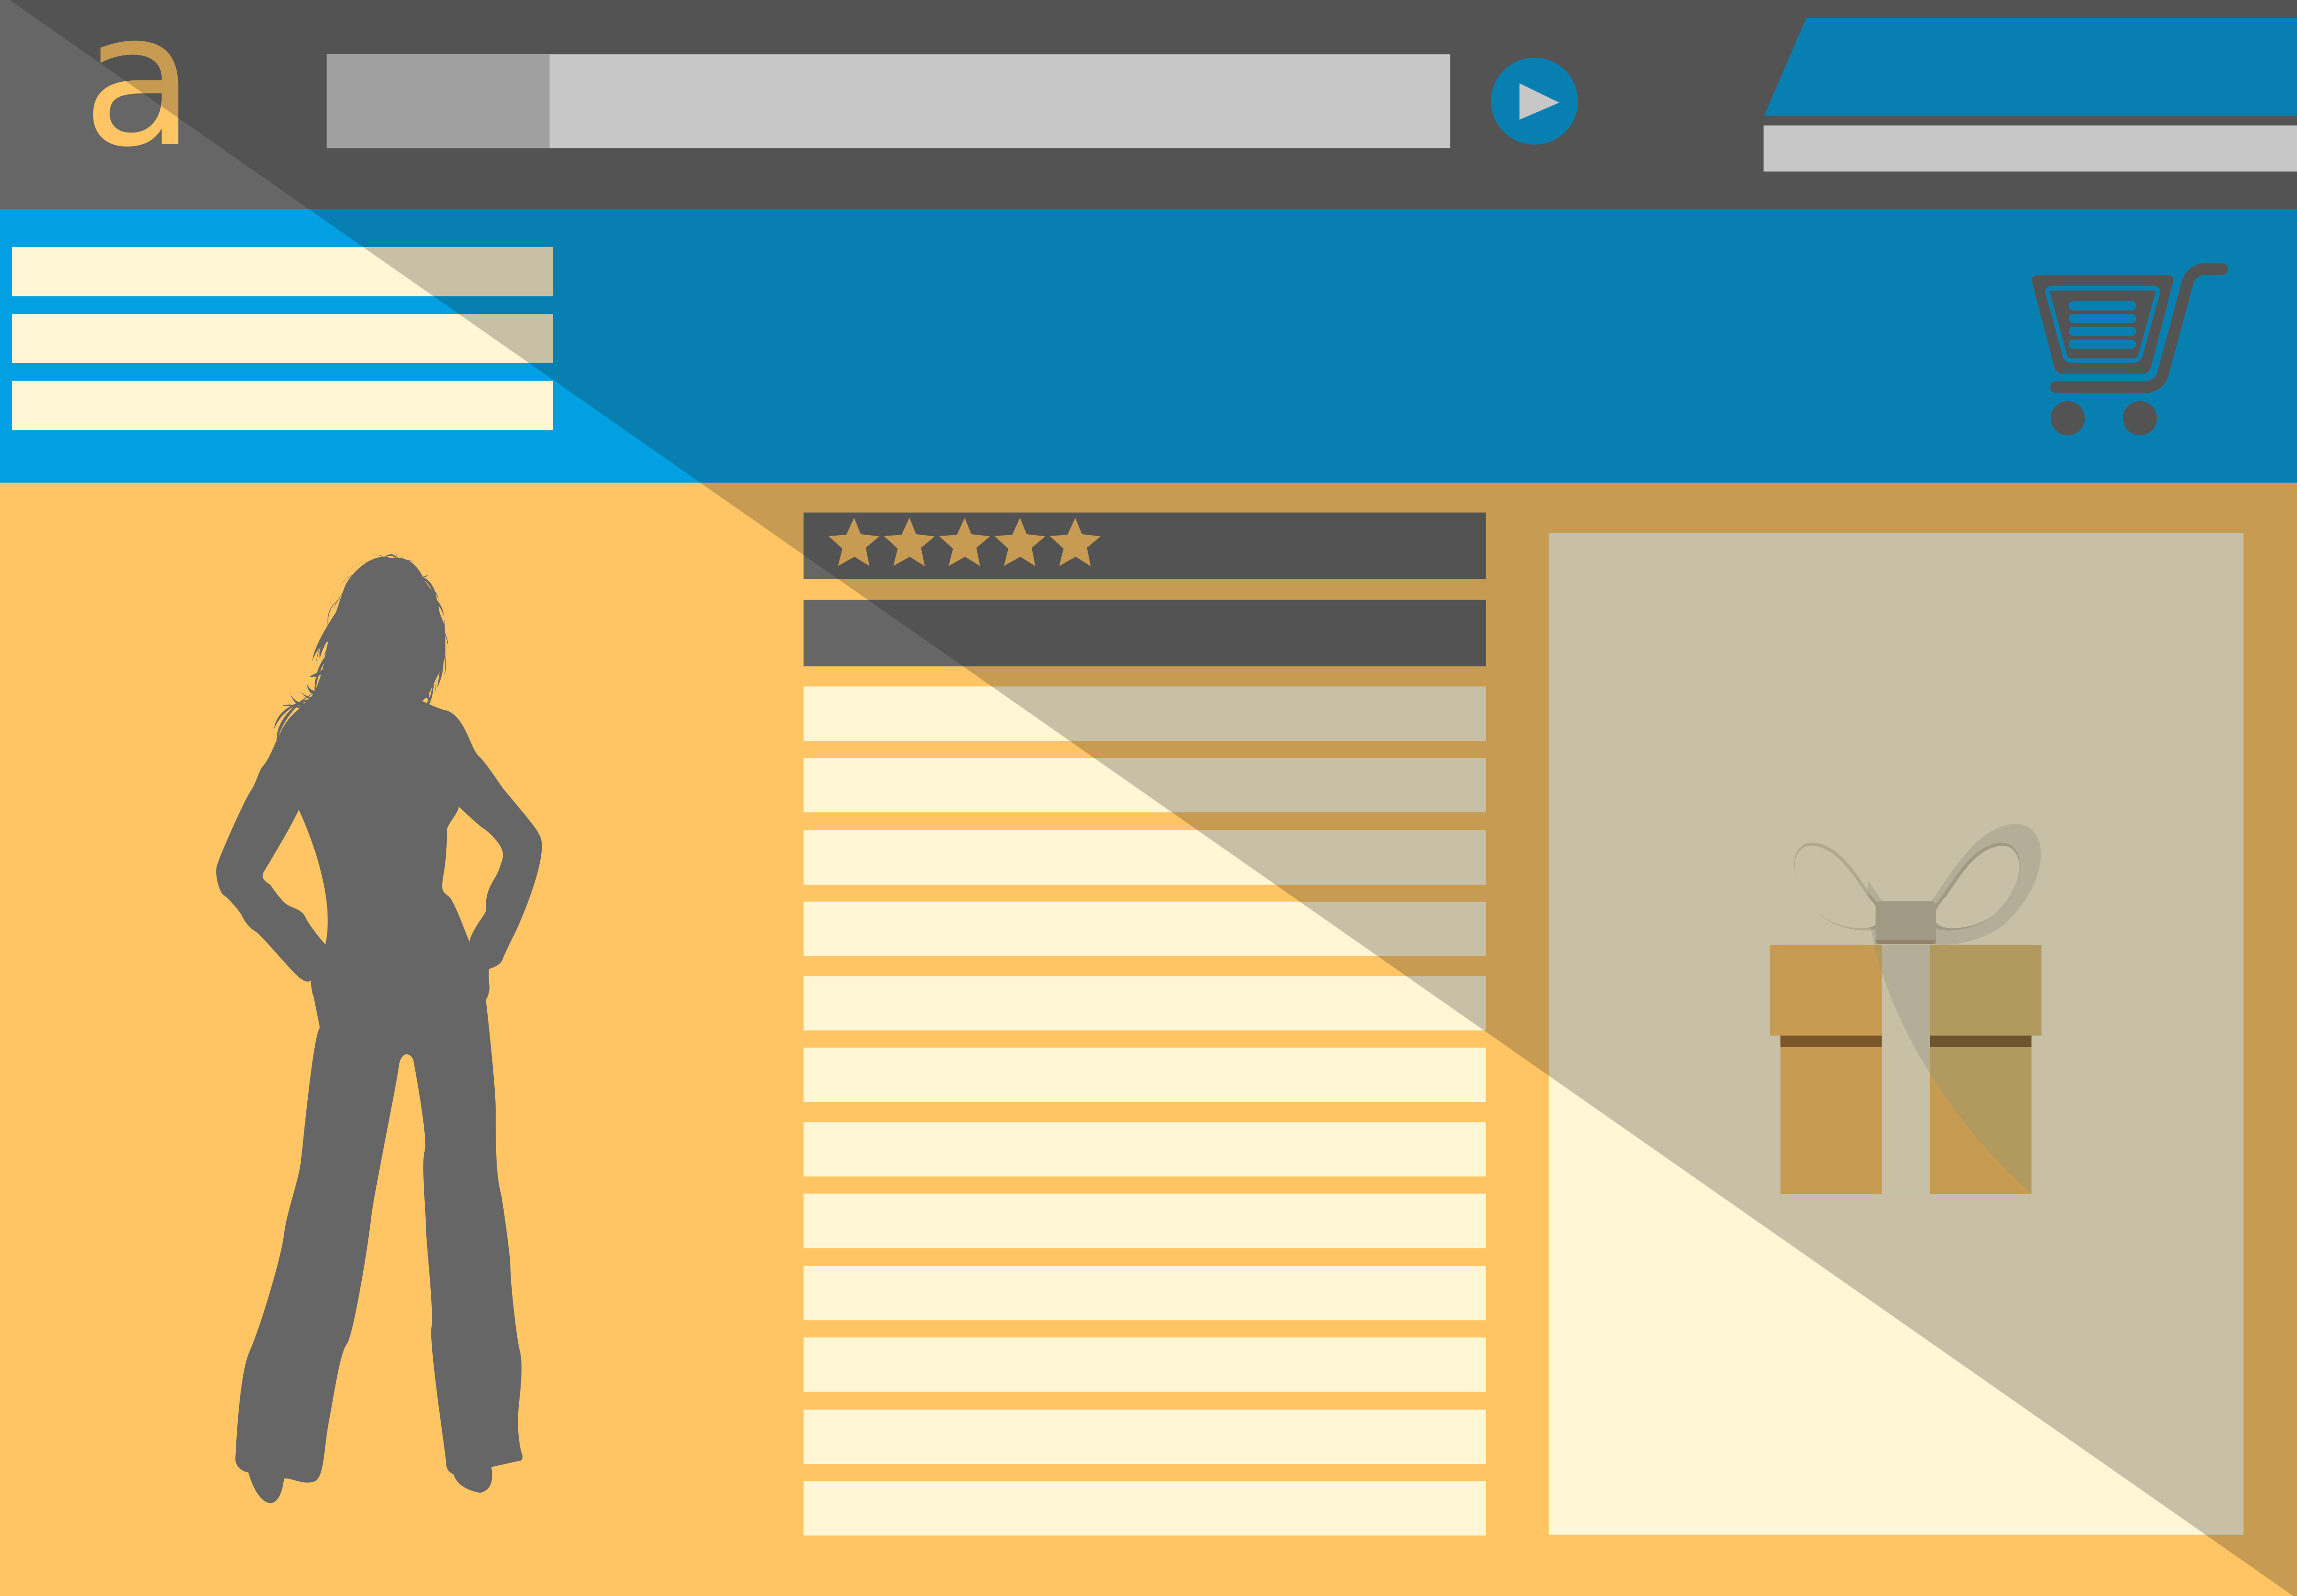 Web Page Mock Up - Online Shopping, Abstract, Payment, Satisfaction, Sale, HQ Photo